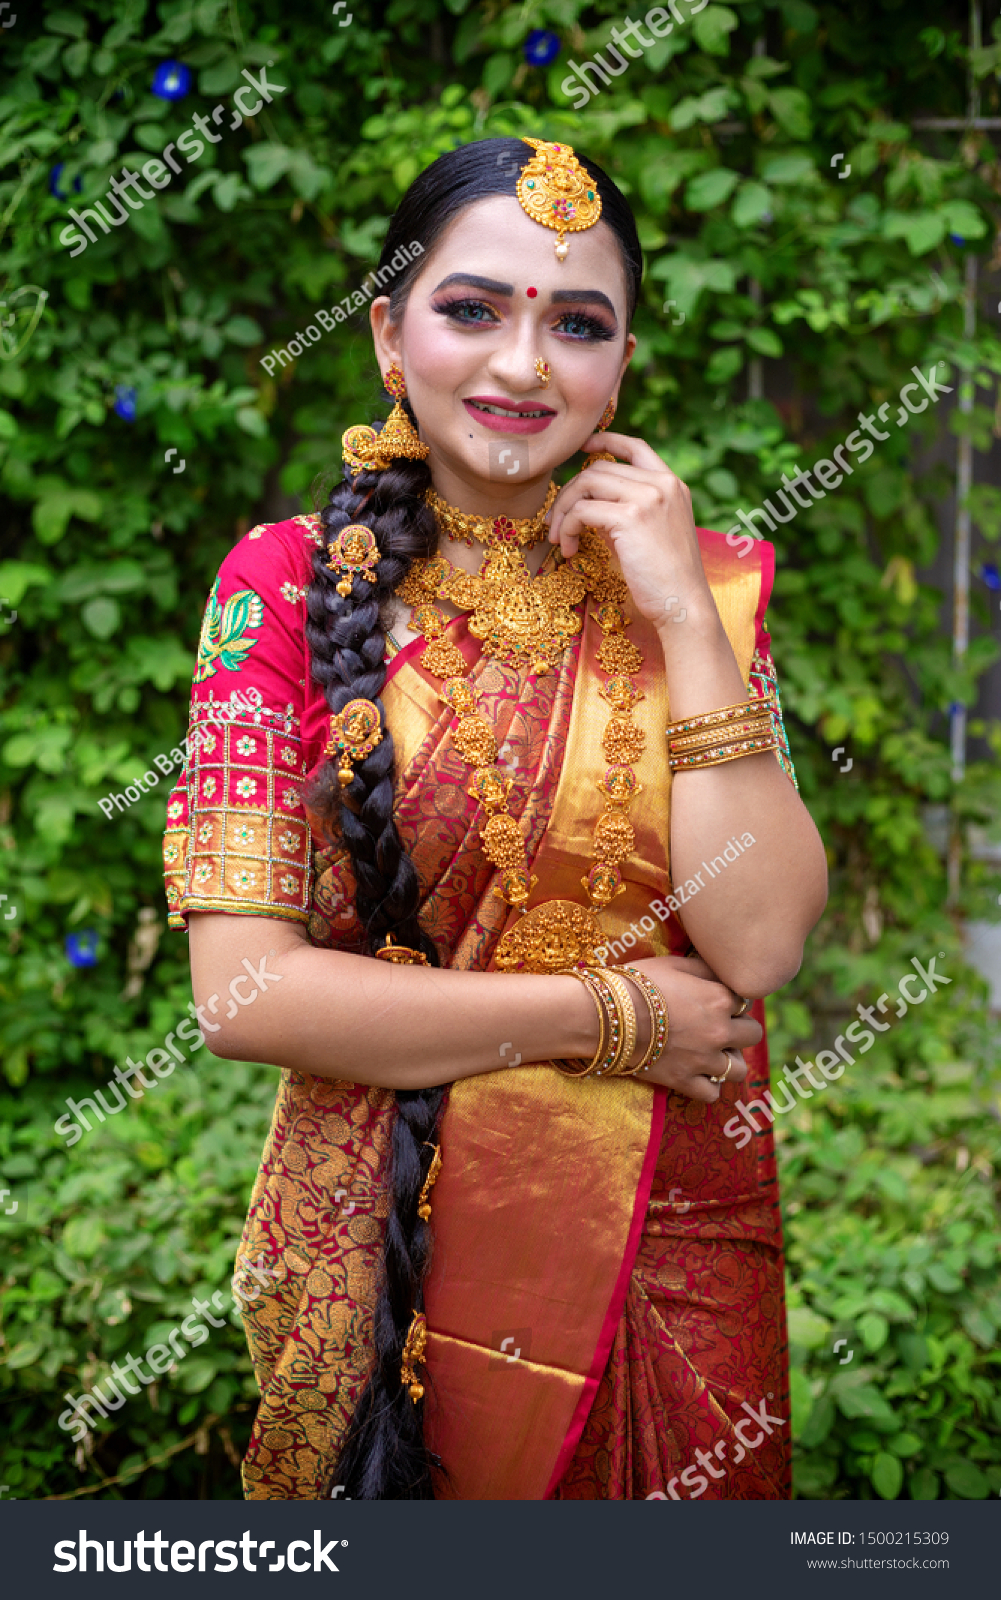 Traditional Young Indian Bride Wedding Dress Stock Photo Edit Now 1500215309,Wedding Dresses 500 And Under